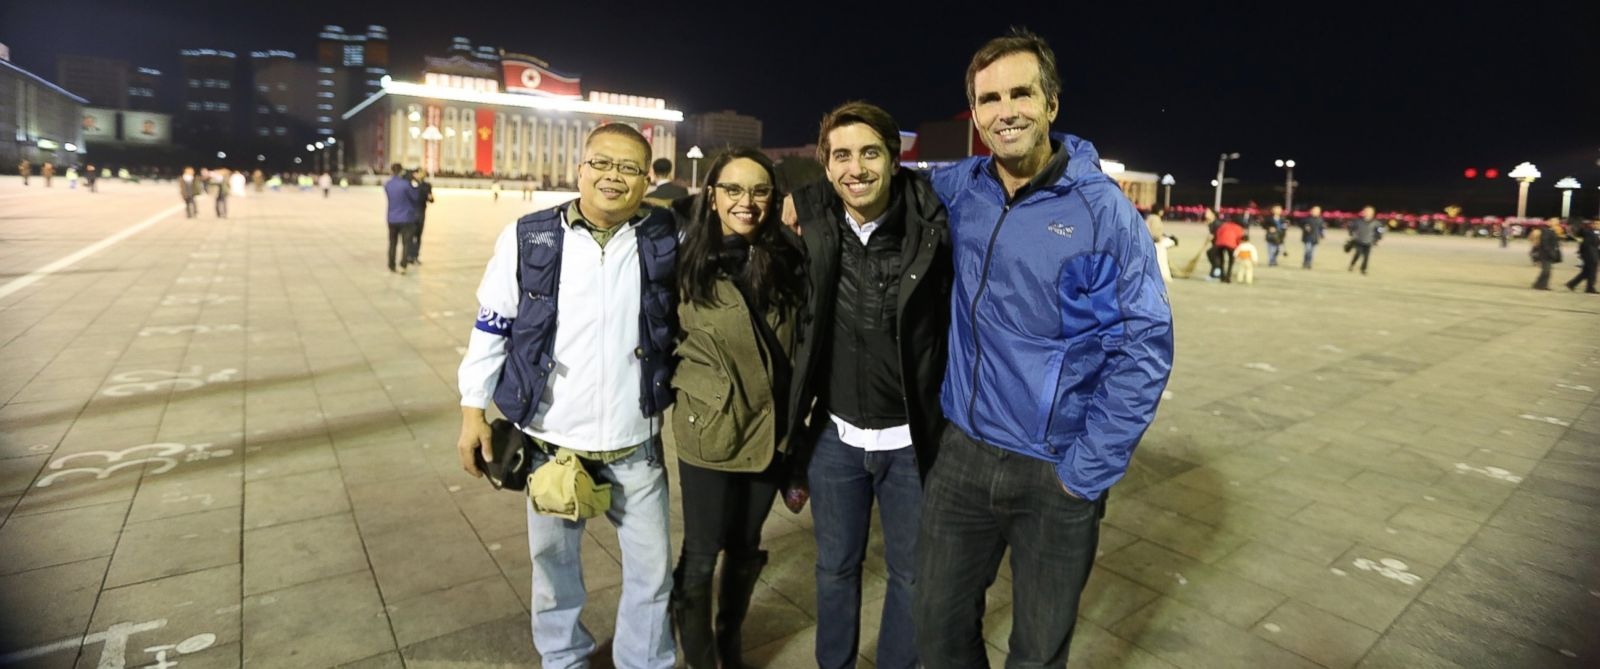 PHOTO: From left to right: ABC News Gamay Palacios, Margaret Dawson, Ronnie Polidoro and Bob Woodruff in Kim il-Sung Square, North Korea.